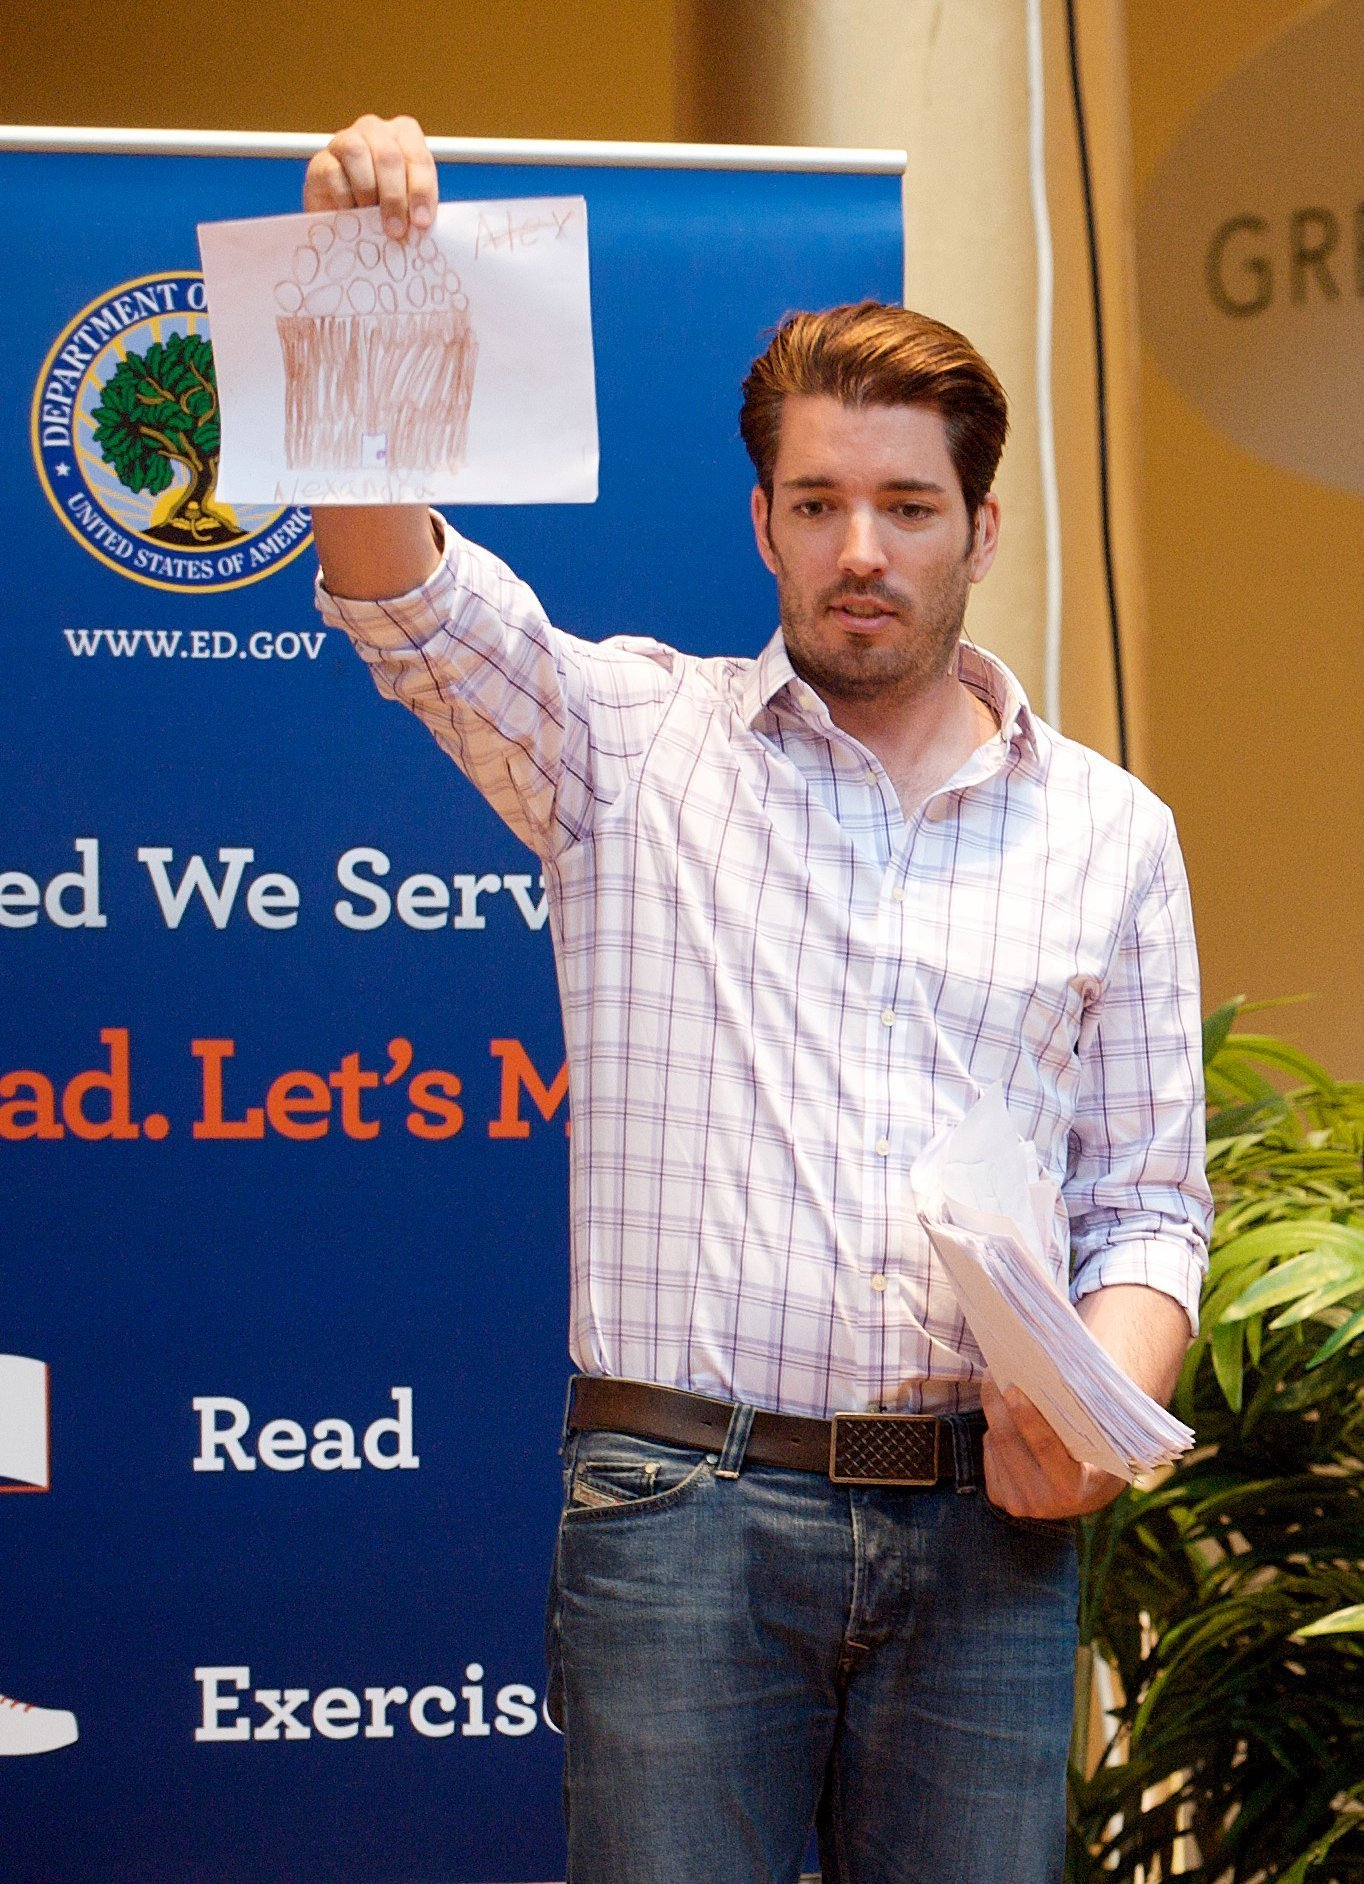 Jonathan Scott at the United We Serve Let's Read. Let's Move event on August 6, 2013. | Source: Wikimedia Commons